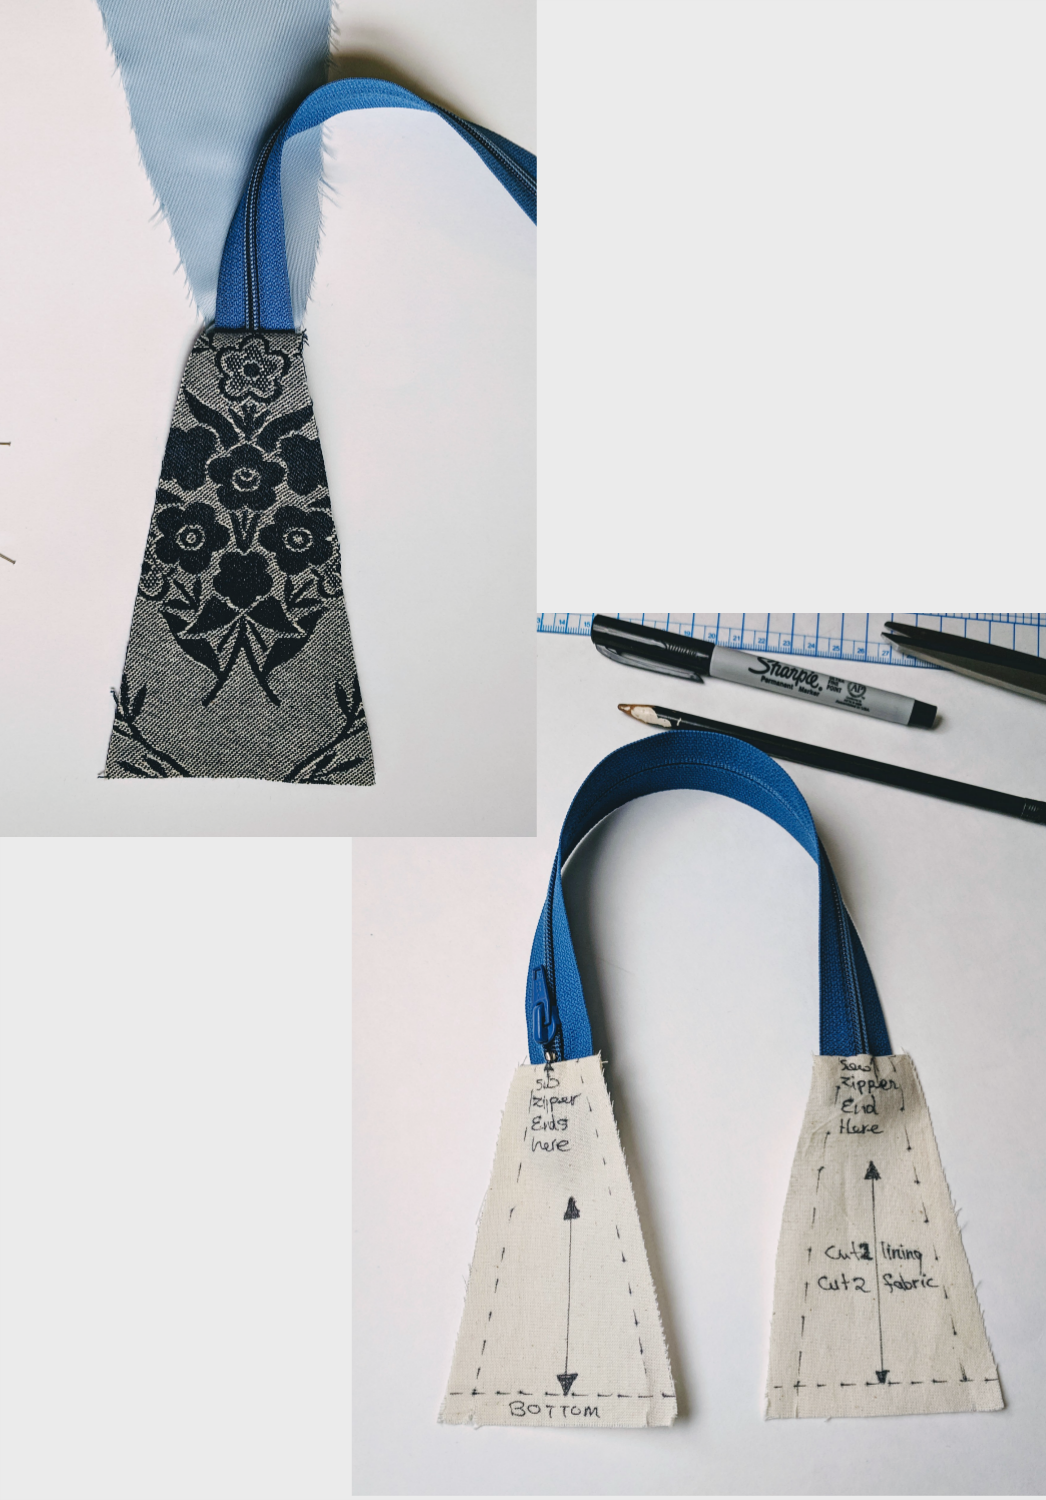 Match top edges to zipper tape - Top of side-bag panels must be equal to closed zipper width.